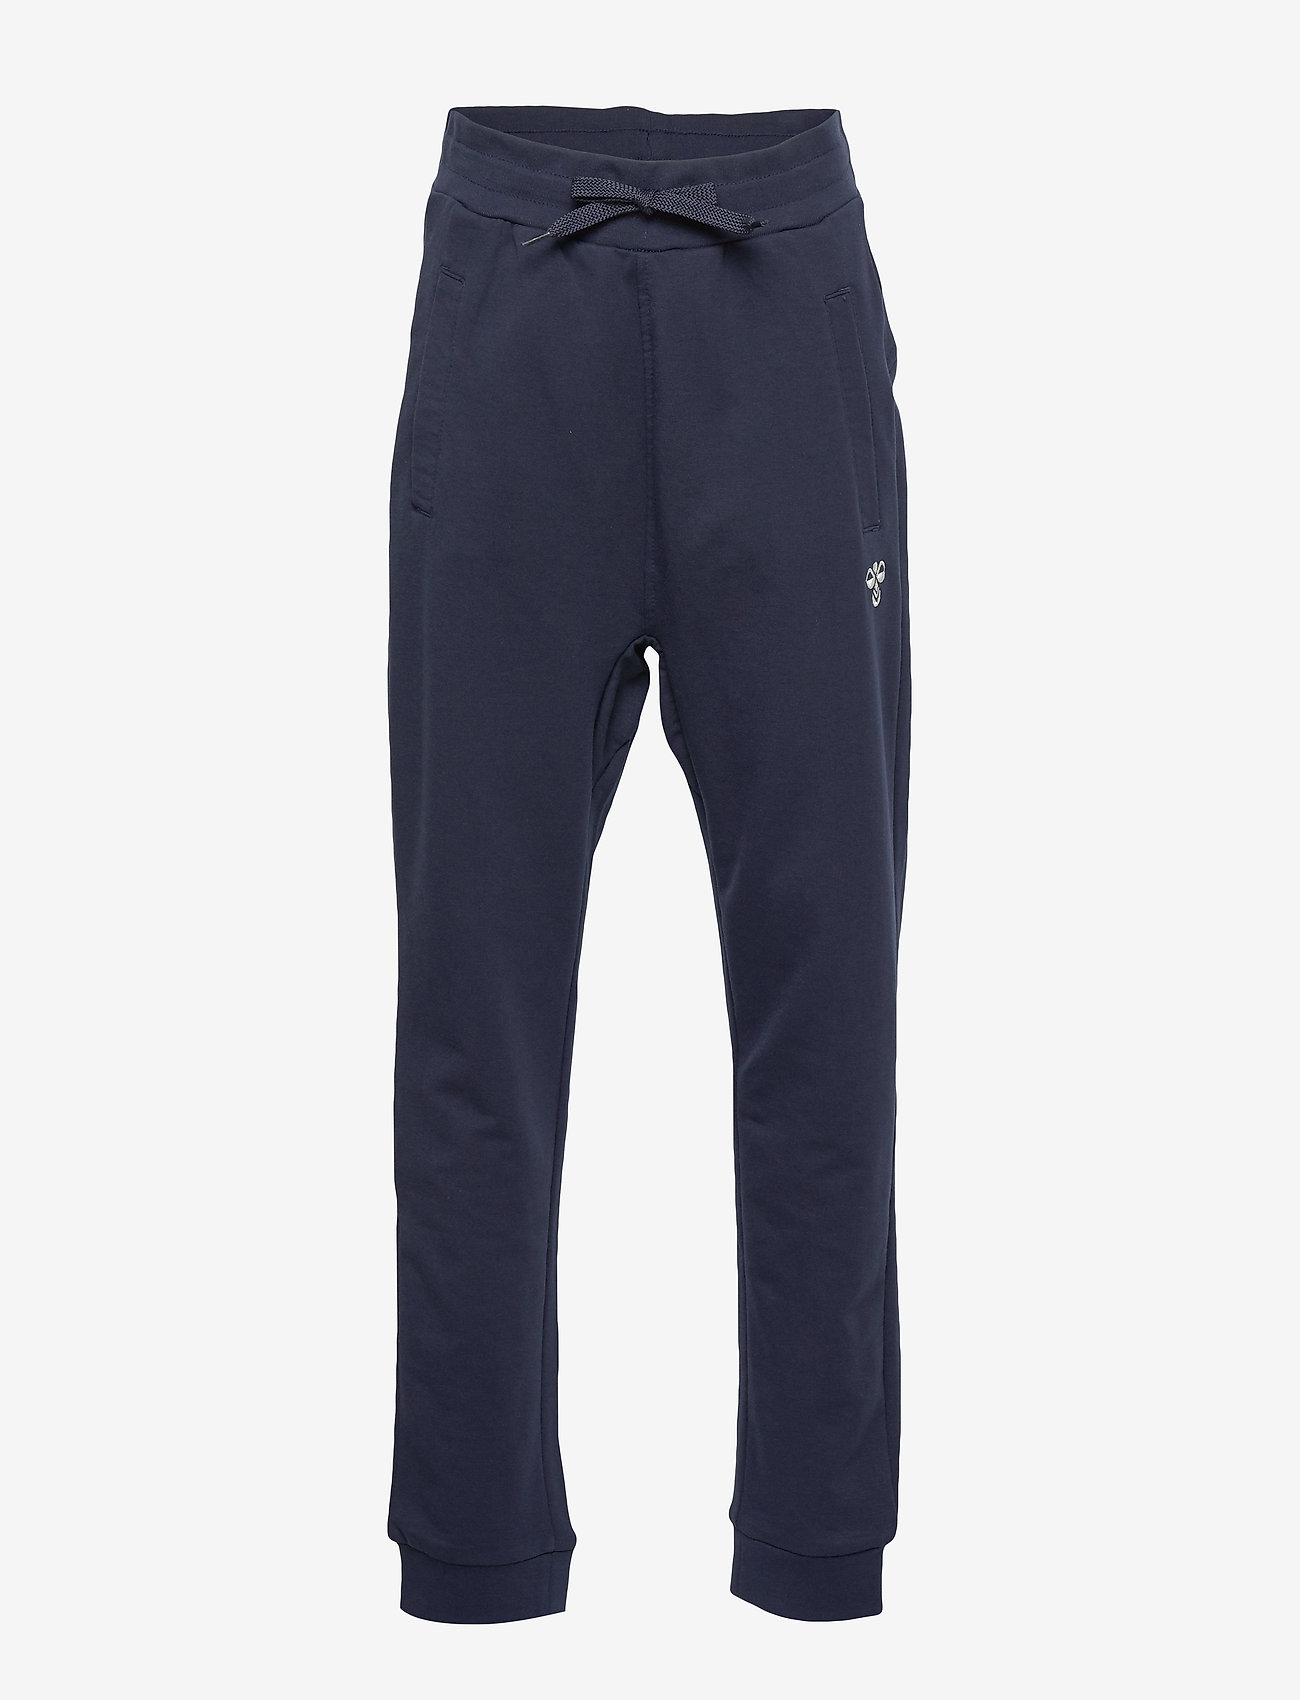 Hummel - hmlPLESS PANTS - sweatpants - black iris - 0